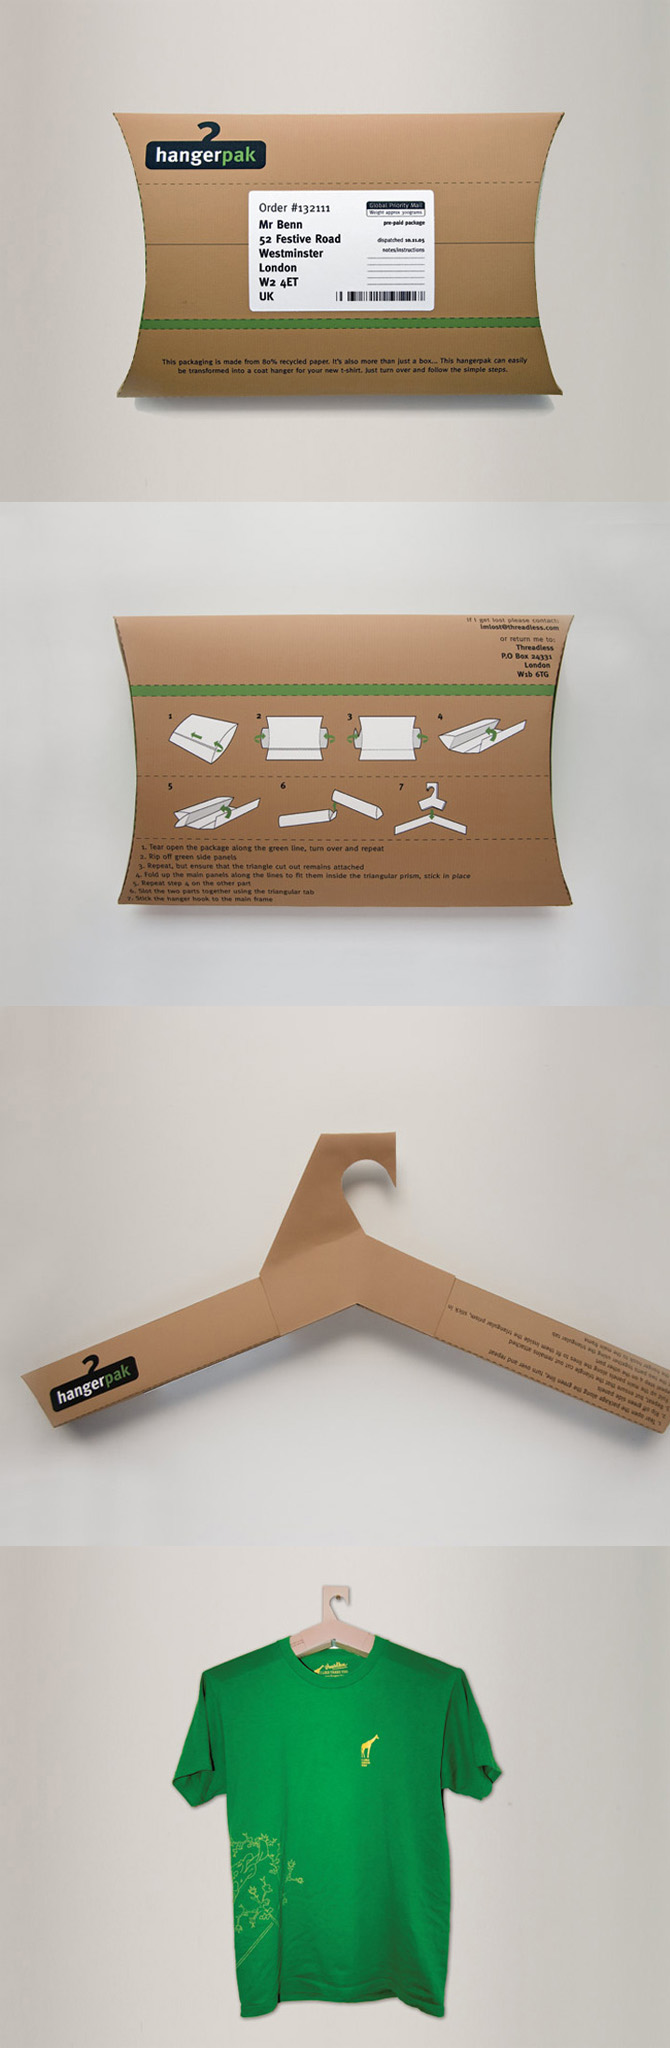 HangerPak hanger packaging